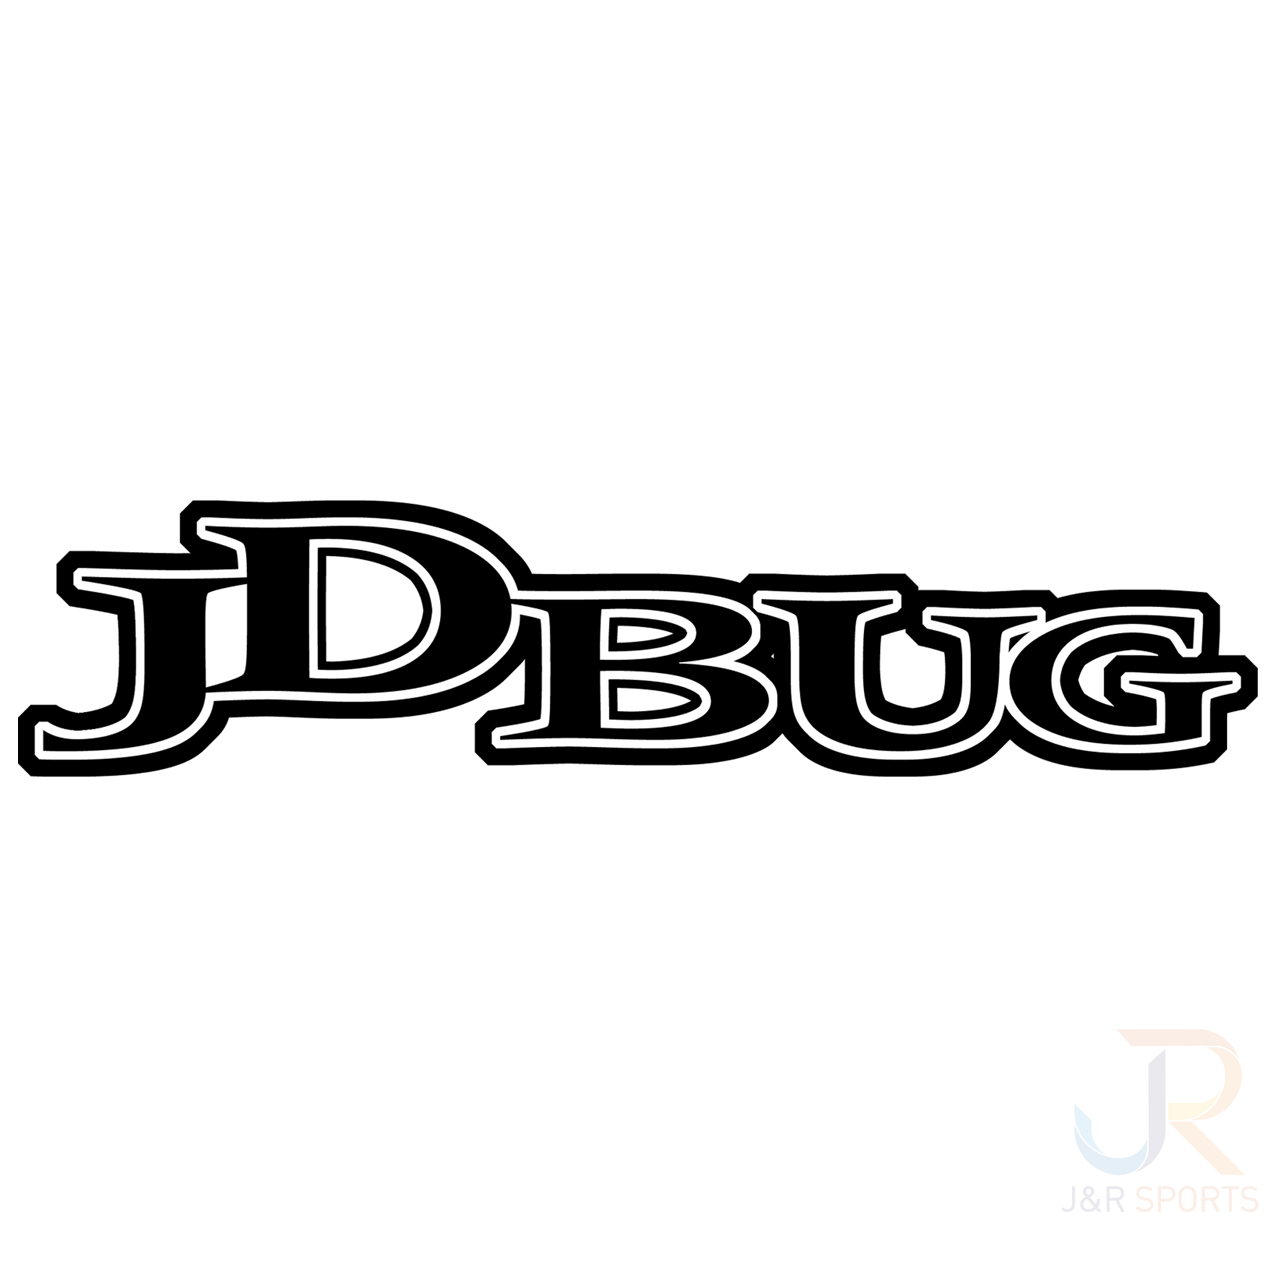 JD Bug Logo